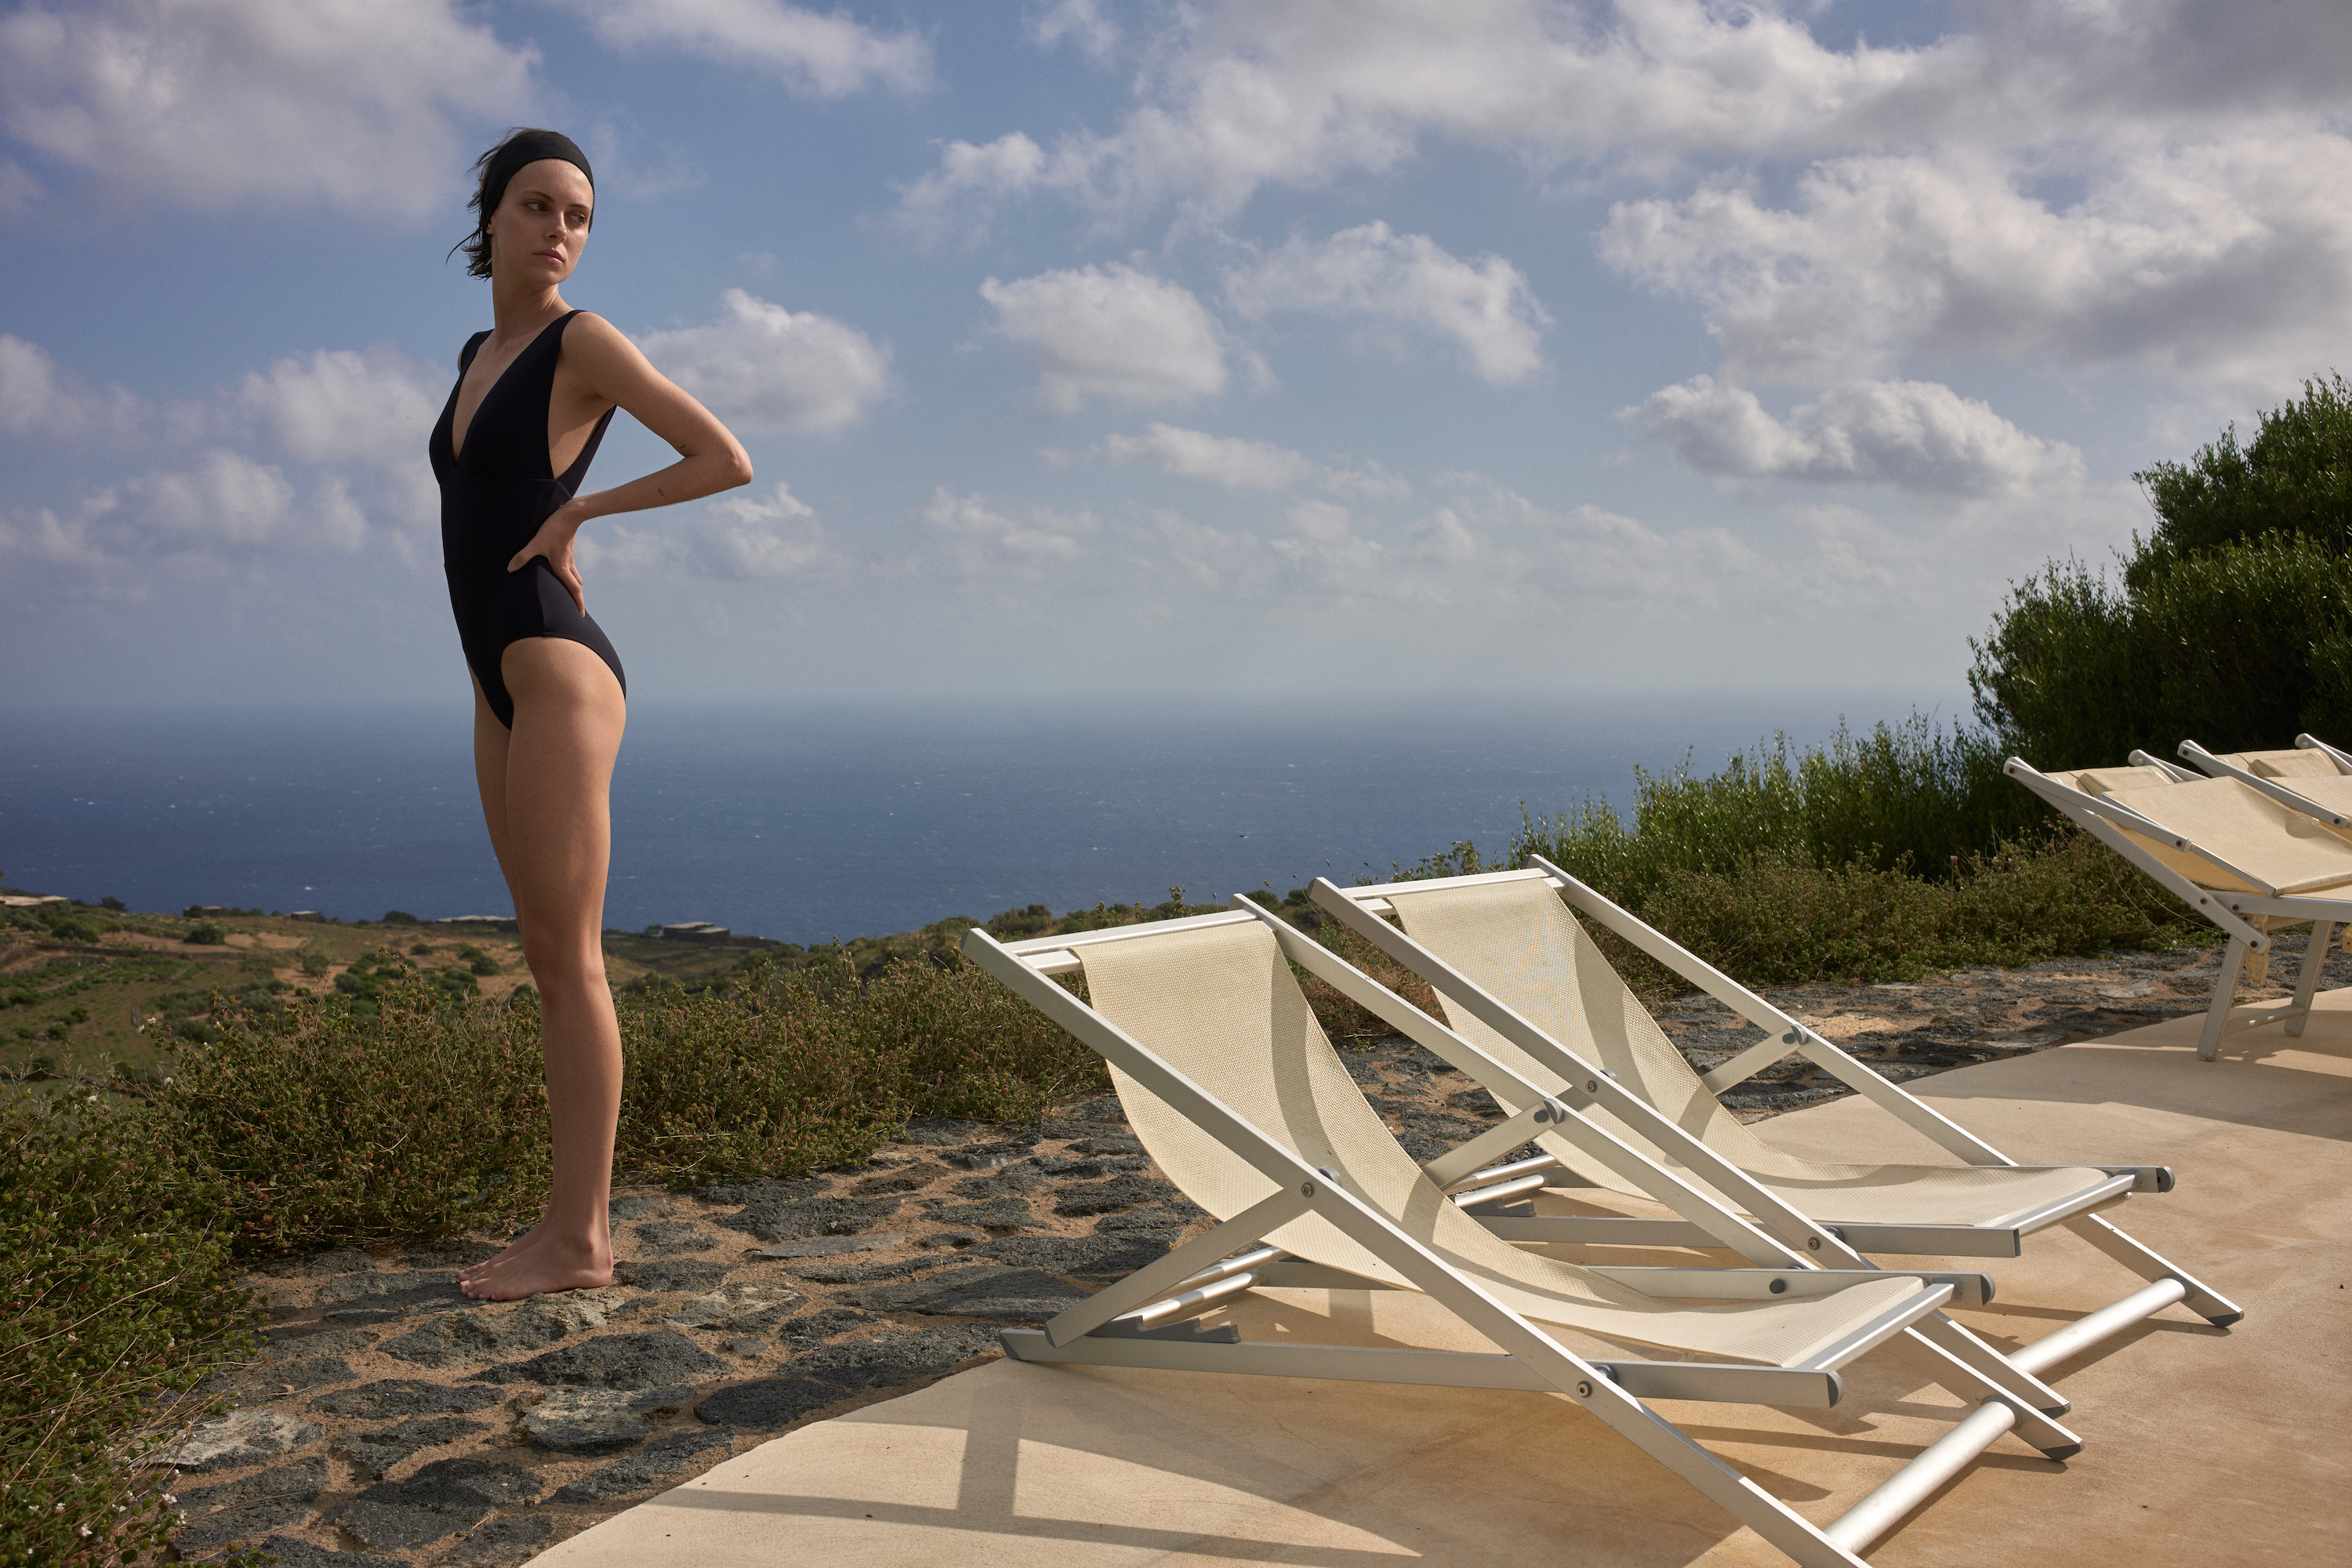 BONDI BORN Resort 20 Knots Collection uses soft, luxury Italian Lycra that is sustainably produced. Then expertly crafted in Australia.